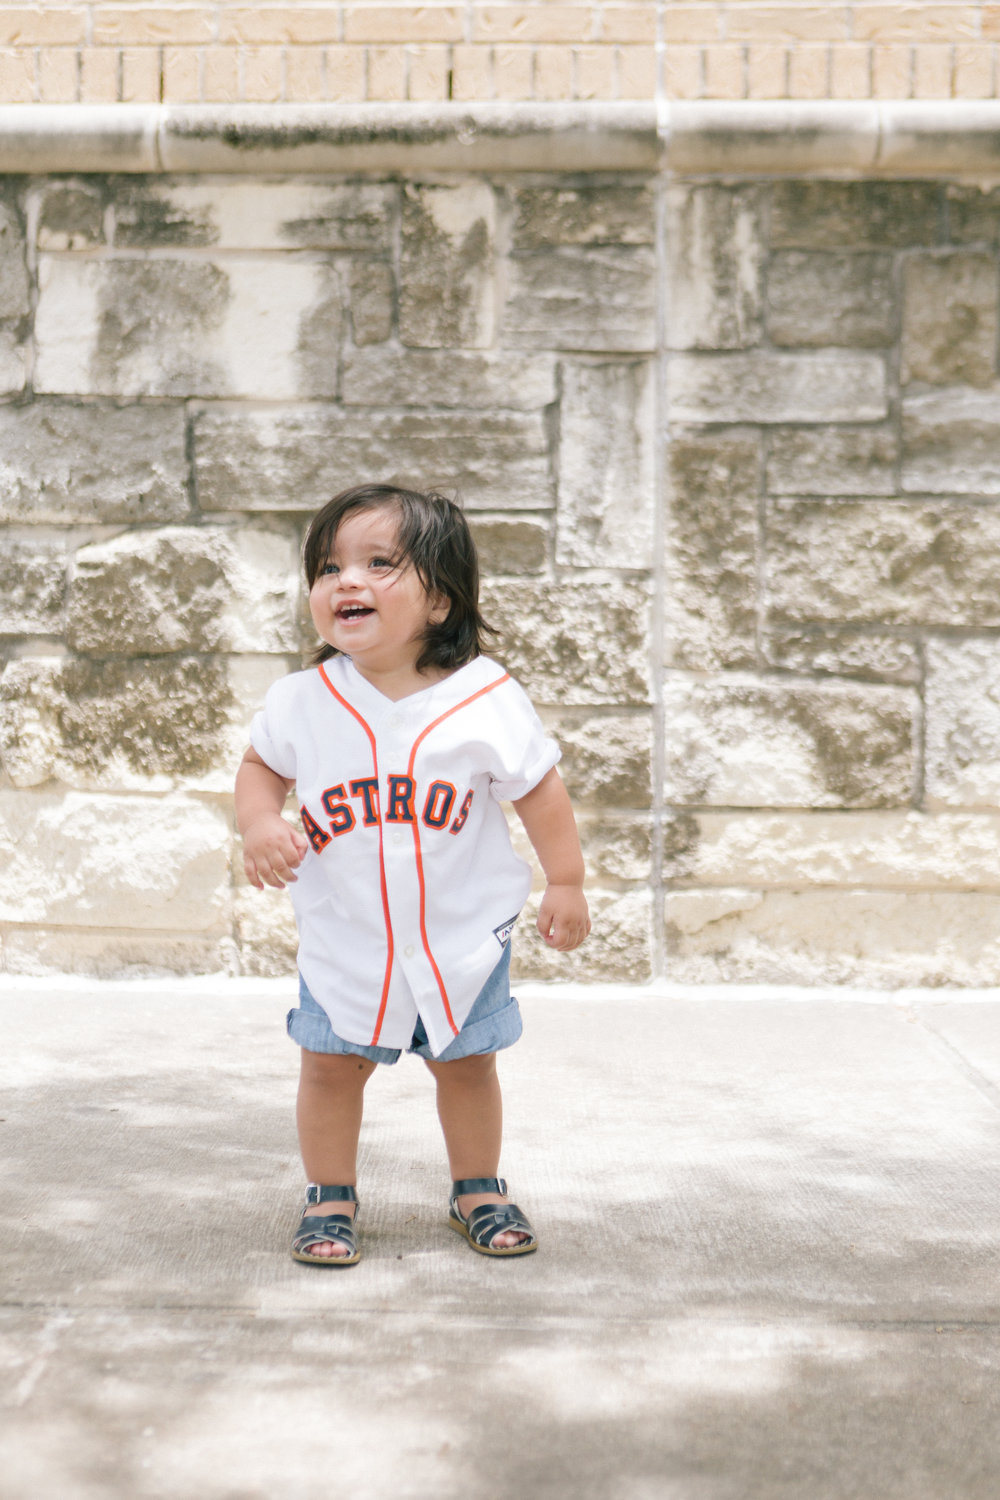 Sebastian looks so stinking cute in his Astros jersey.